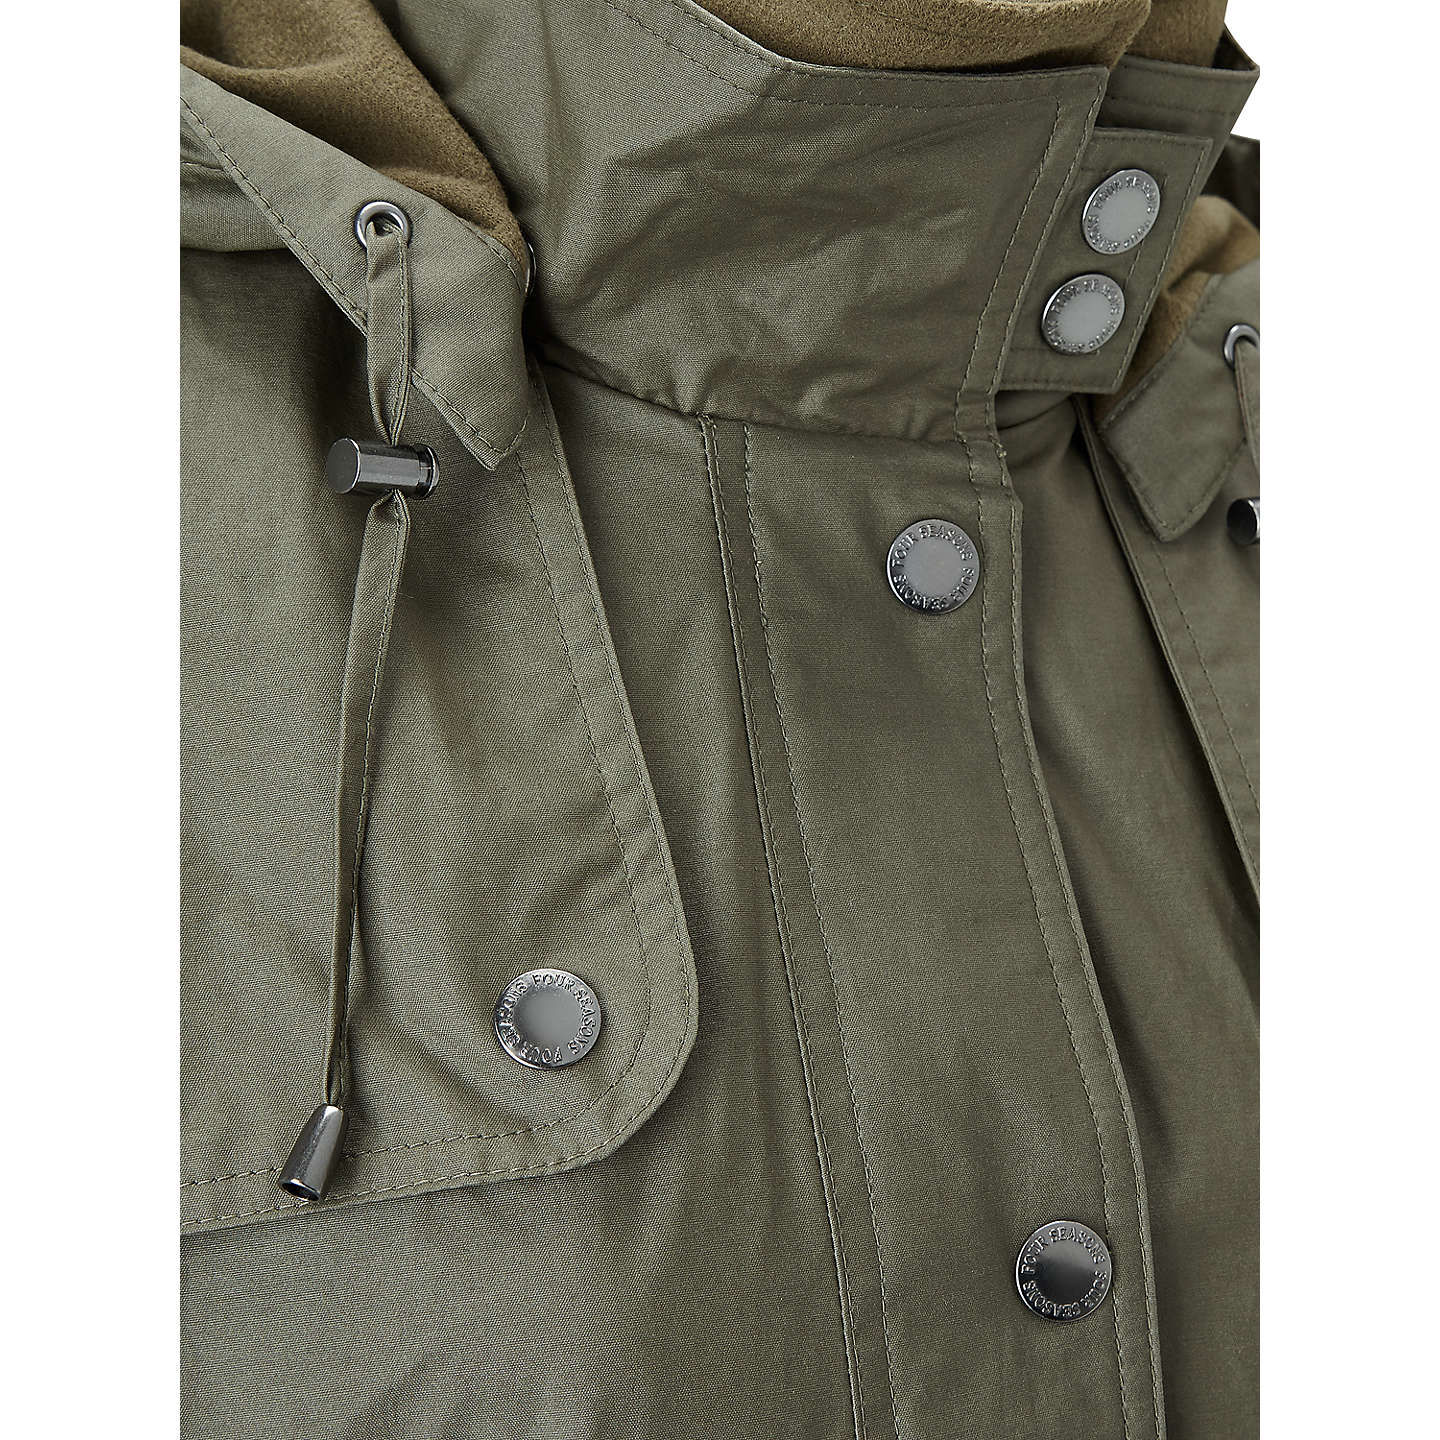 BuyFour Seasons Waterproof Wax Jacket, Olive, XXL Online at johnlewis.com